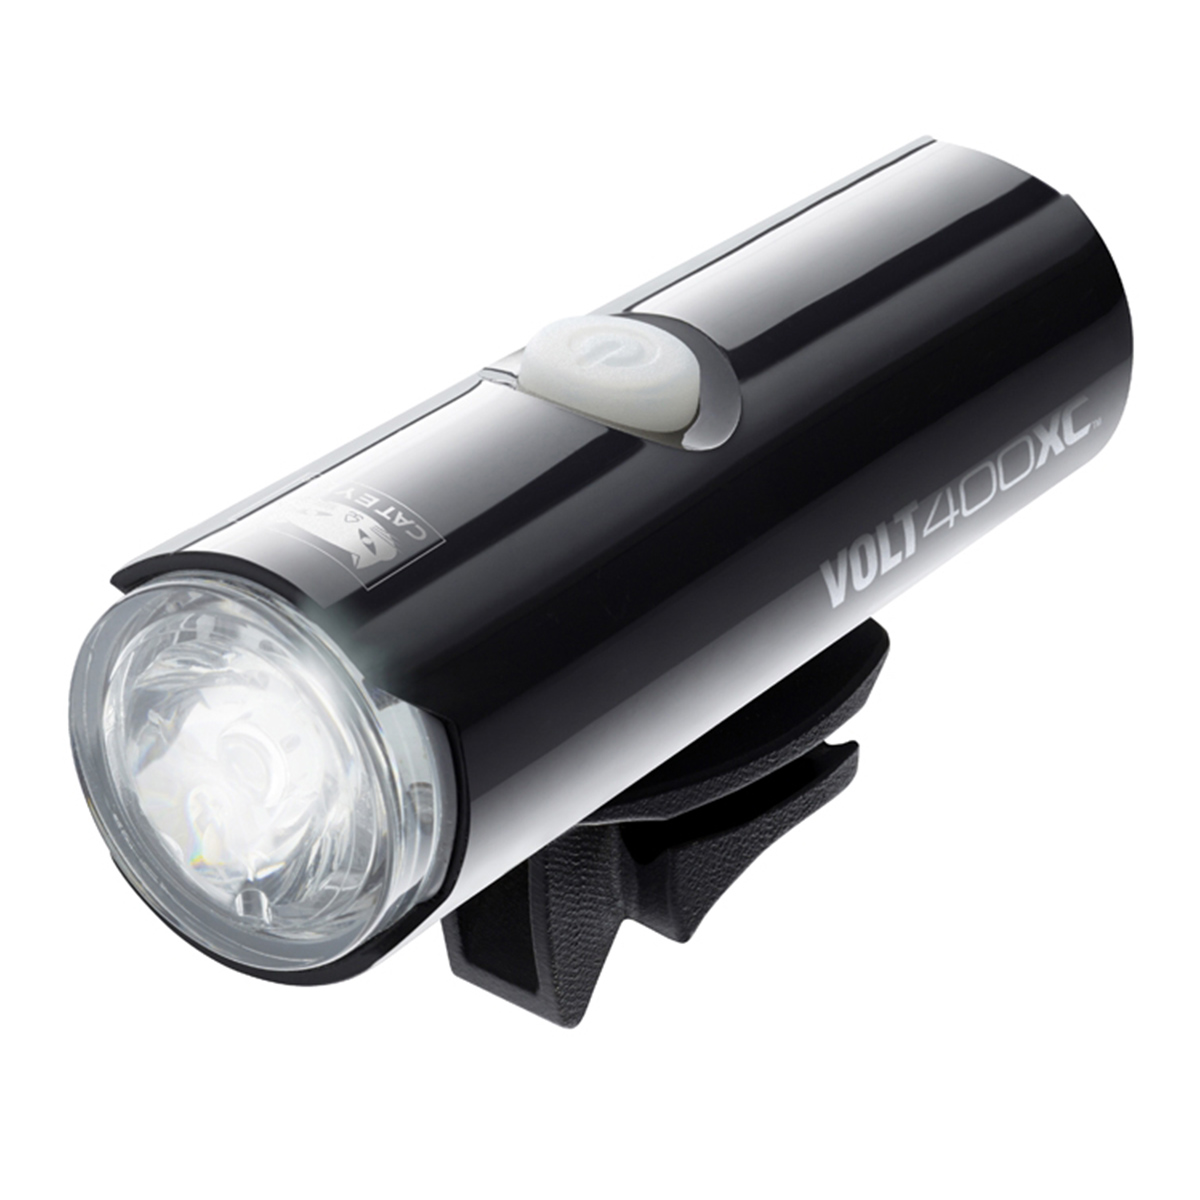 Cateye Volt 400 XC Rechargeable Front Light